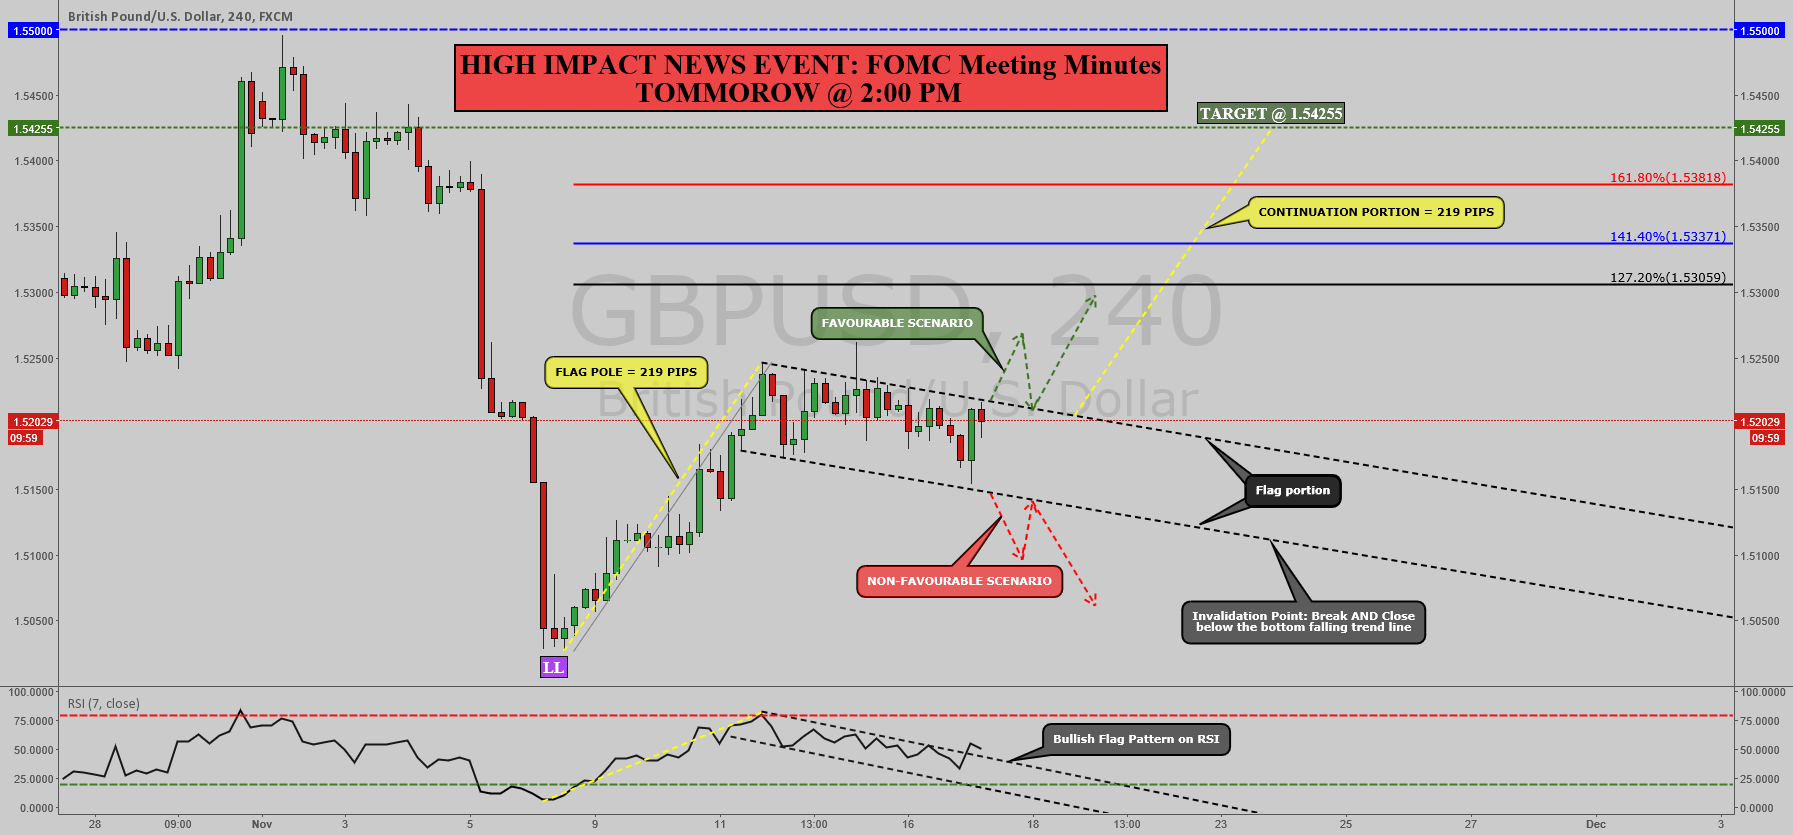 GBPUSD:BULLISH FLAG PATTERN FORMED, WAITING FOR BREAKOUT [4HR]!!